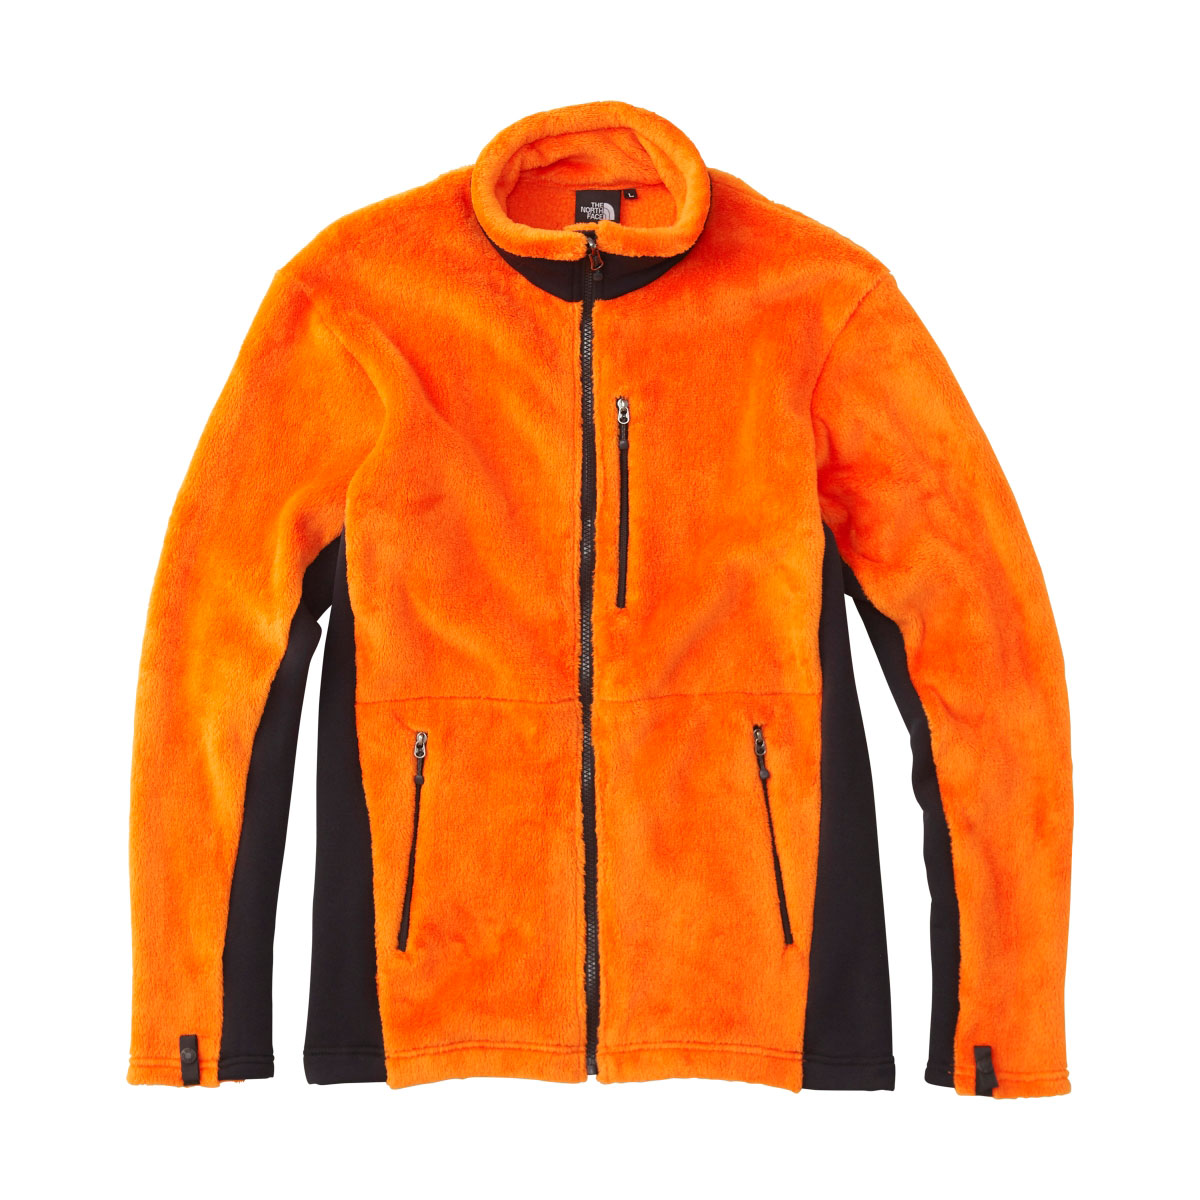 buy popular 0b0cd 8fab0 THE NORTH FACE ZI VERSA MID JACKE (PO/ Persia orange) (the north face zip  decorative collar mid jacket)